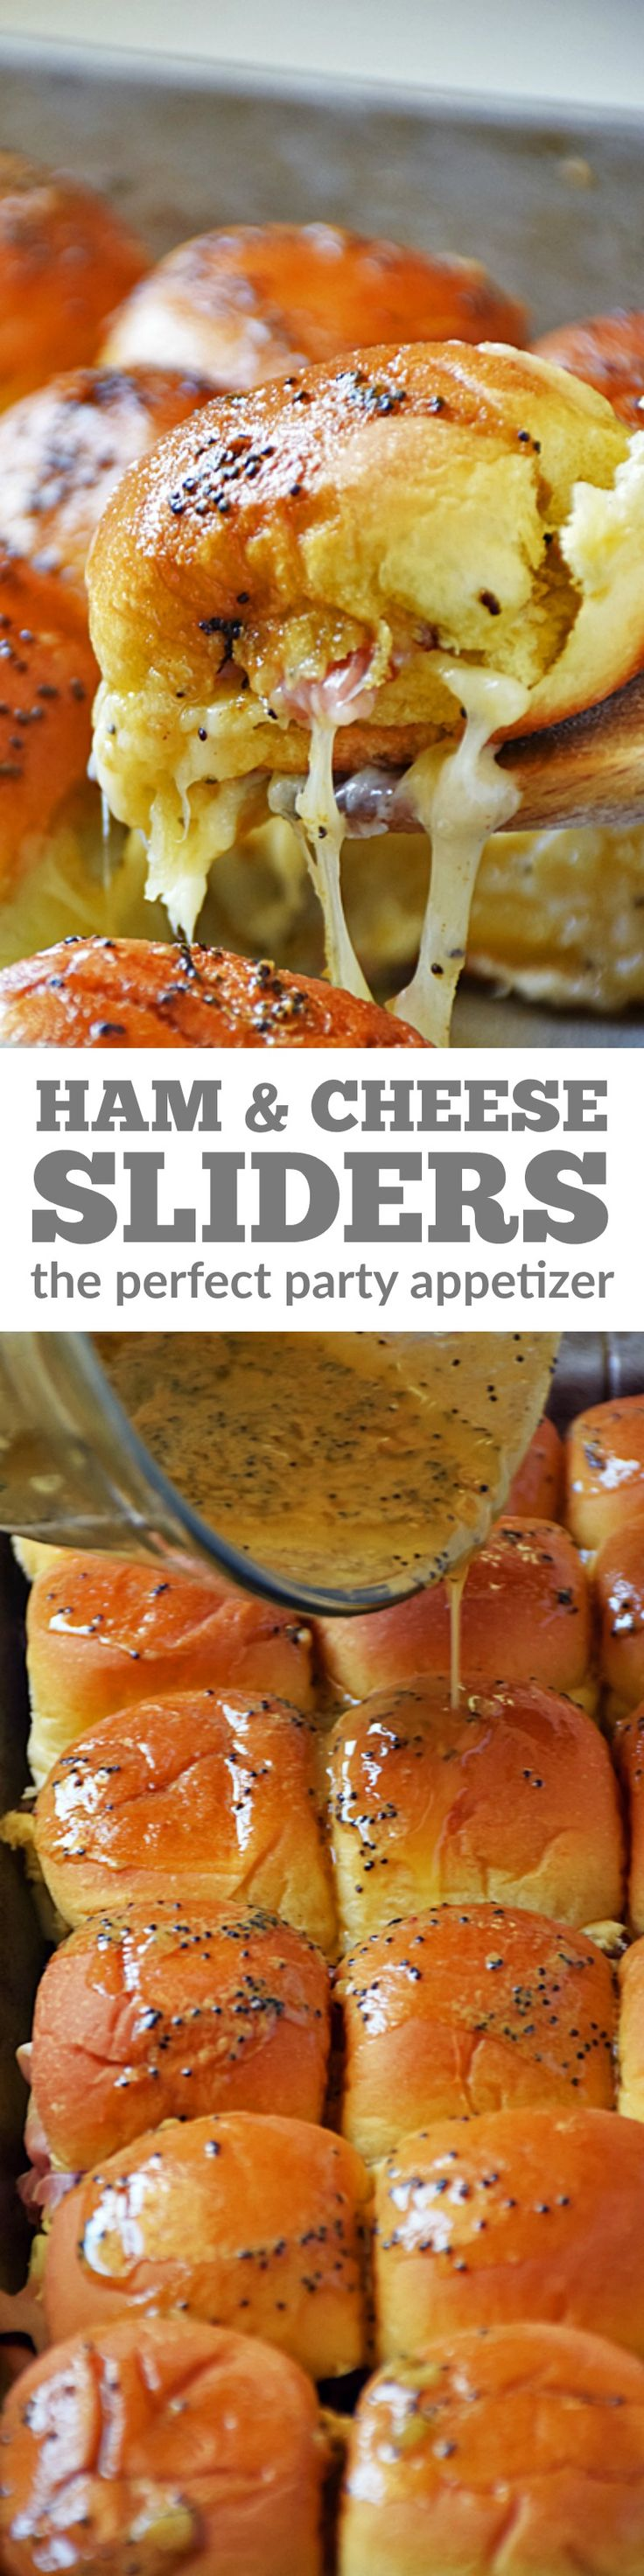 Baked Ham and Cheese Sliders | by Life Tastes Good are the perfect party appetizer this summer! This easy recipe, loaded with ham and cheese, is topped with a buttery mustard glaze to give these sliders a flavor explosion and then baked to ooey gooey cheesy deliciousness! #LTGrecipes